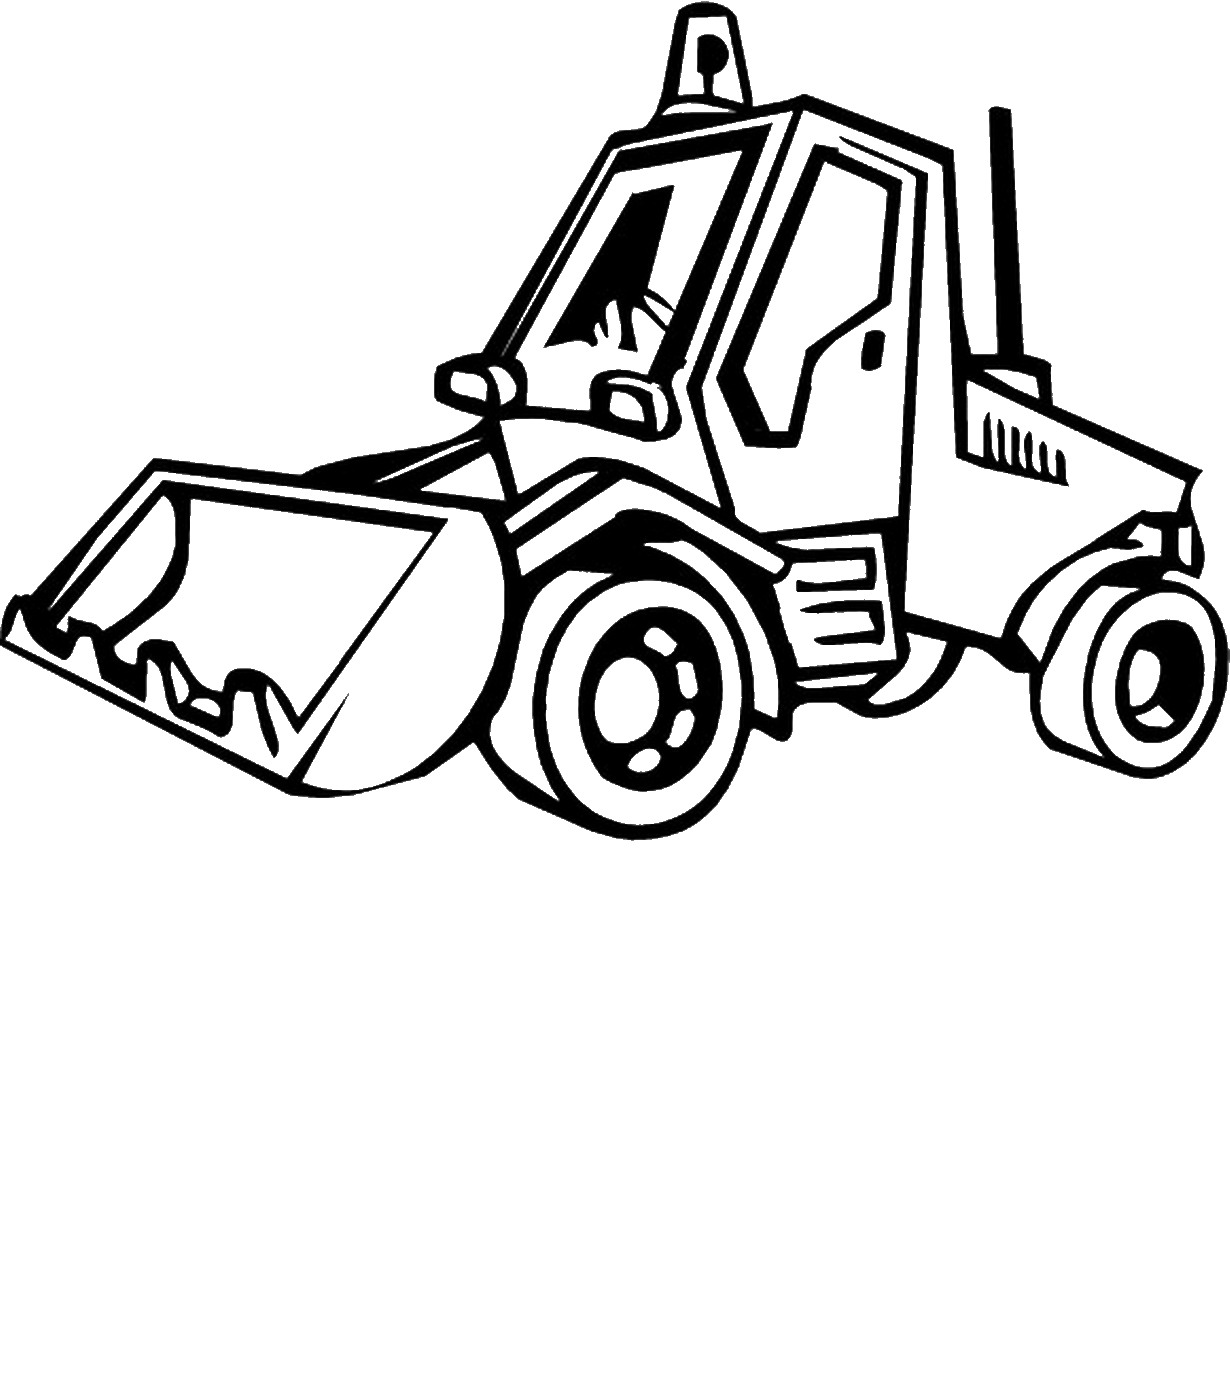 Free Coloring Sheets Of A Vintage Farm Tractor Bw besides S824515 moreover 7117 besides 4180 also S708957. on john deere tractors